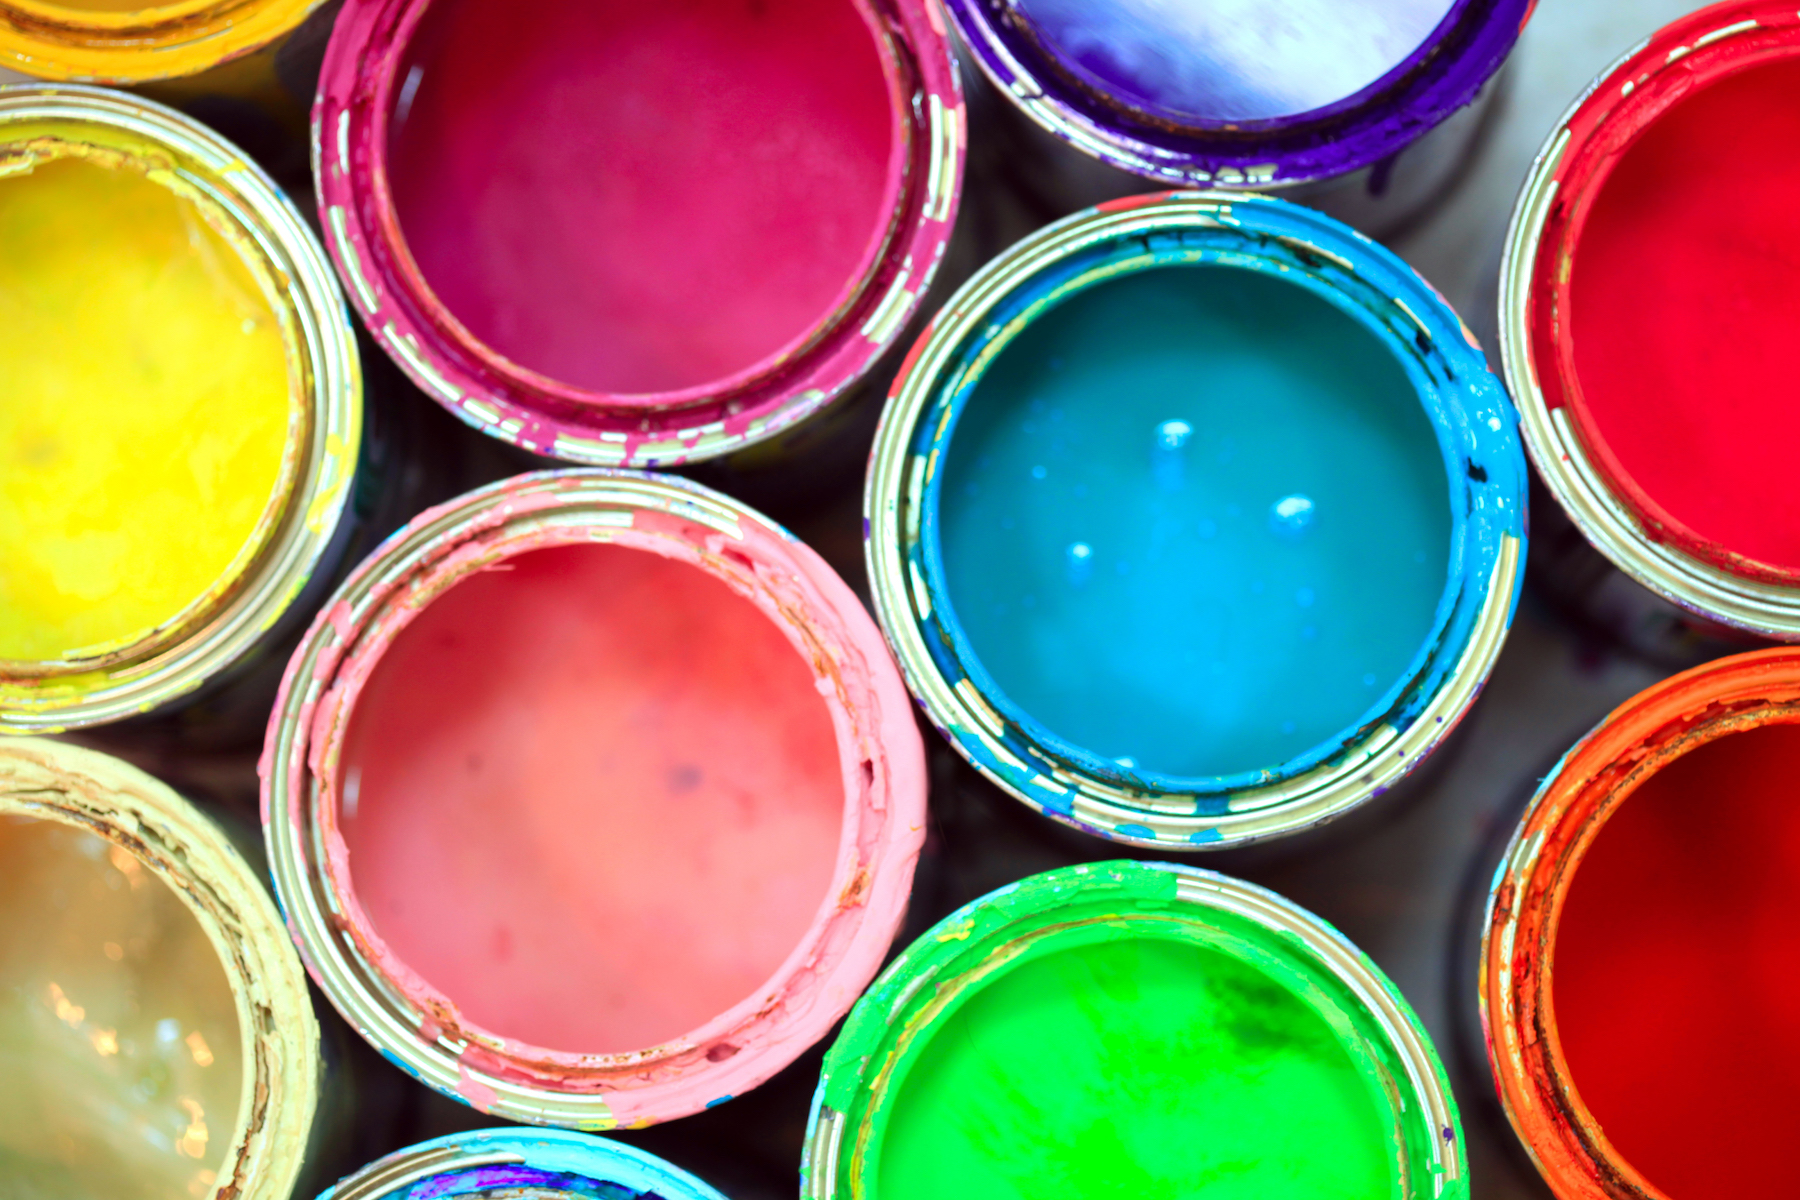 Paint cans in variety of colors